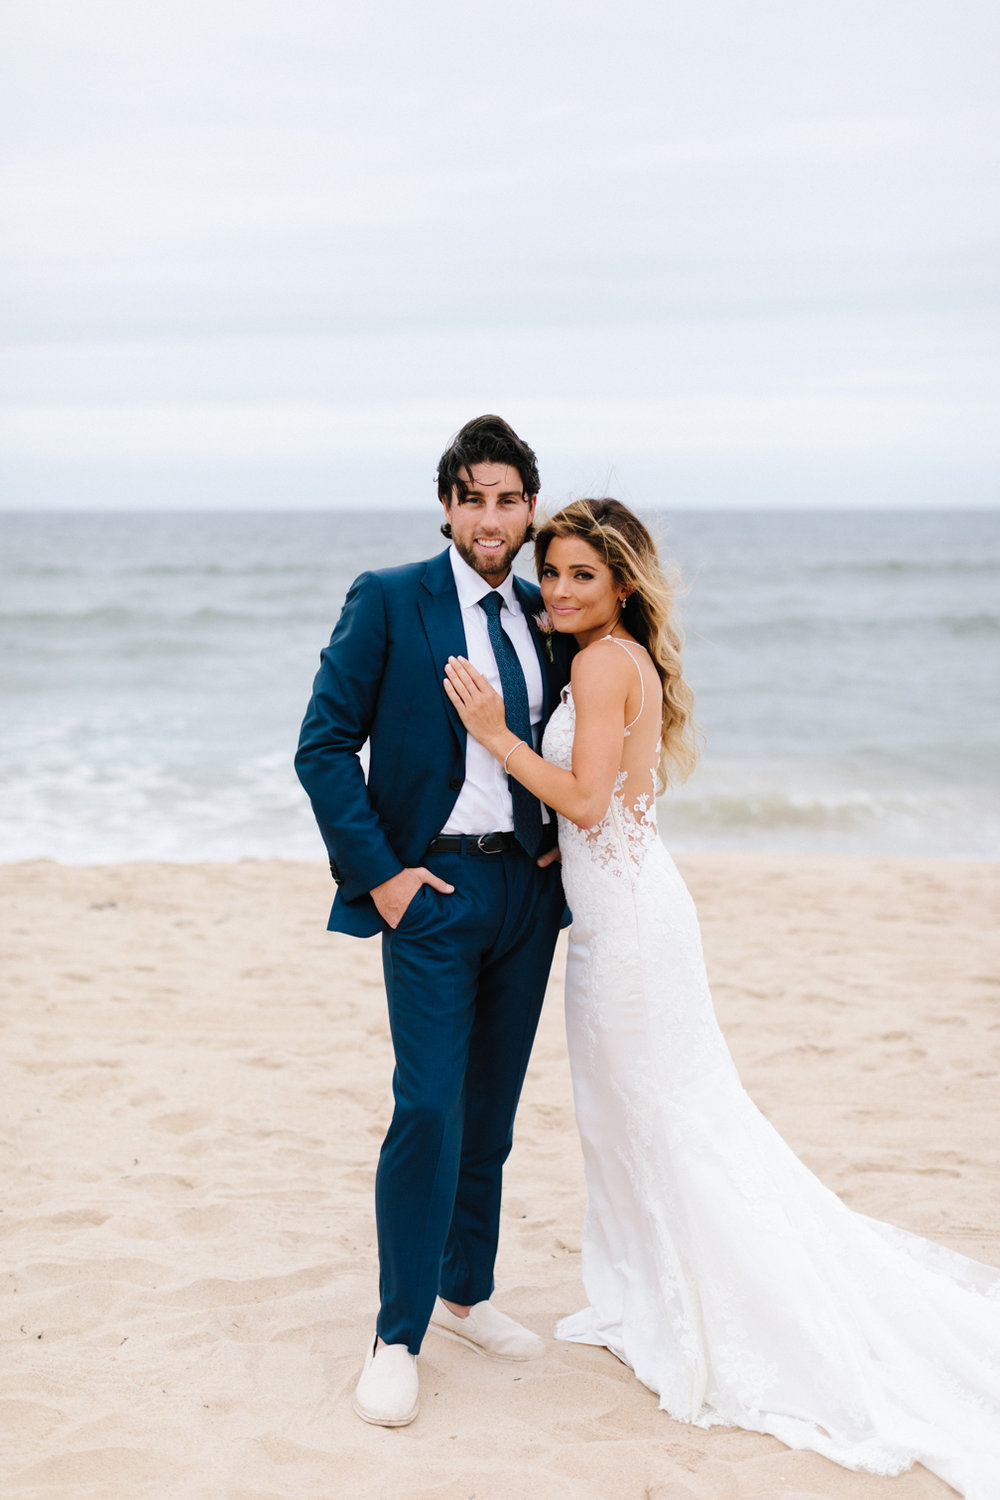 GURNEYS MONTAUK WEDDING_BETSI EWING_0013.JPG